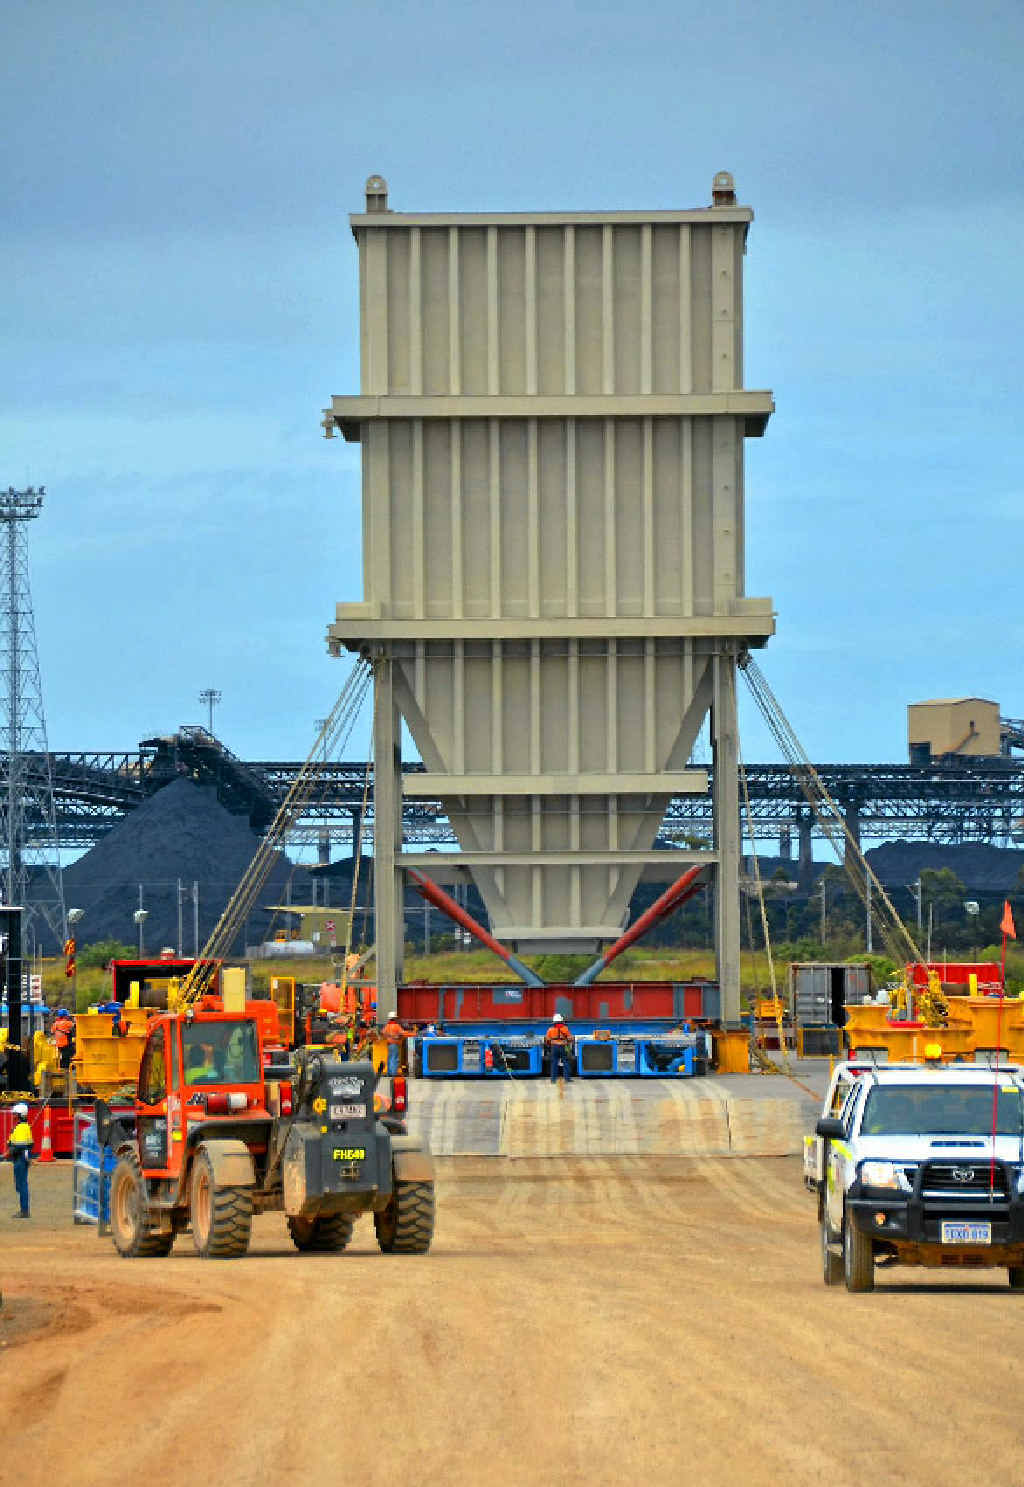 A 350-tonne, 23-metre high surge bin delivered to WICET will be instrumental in loading coal from stockpiles for export.